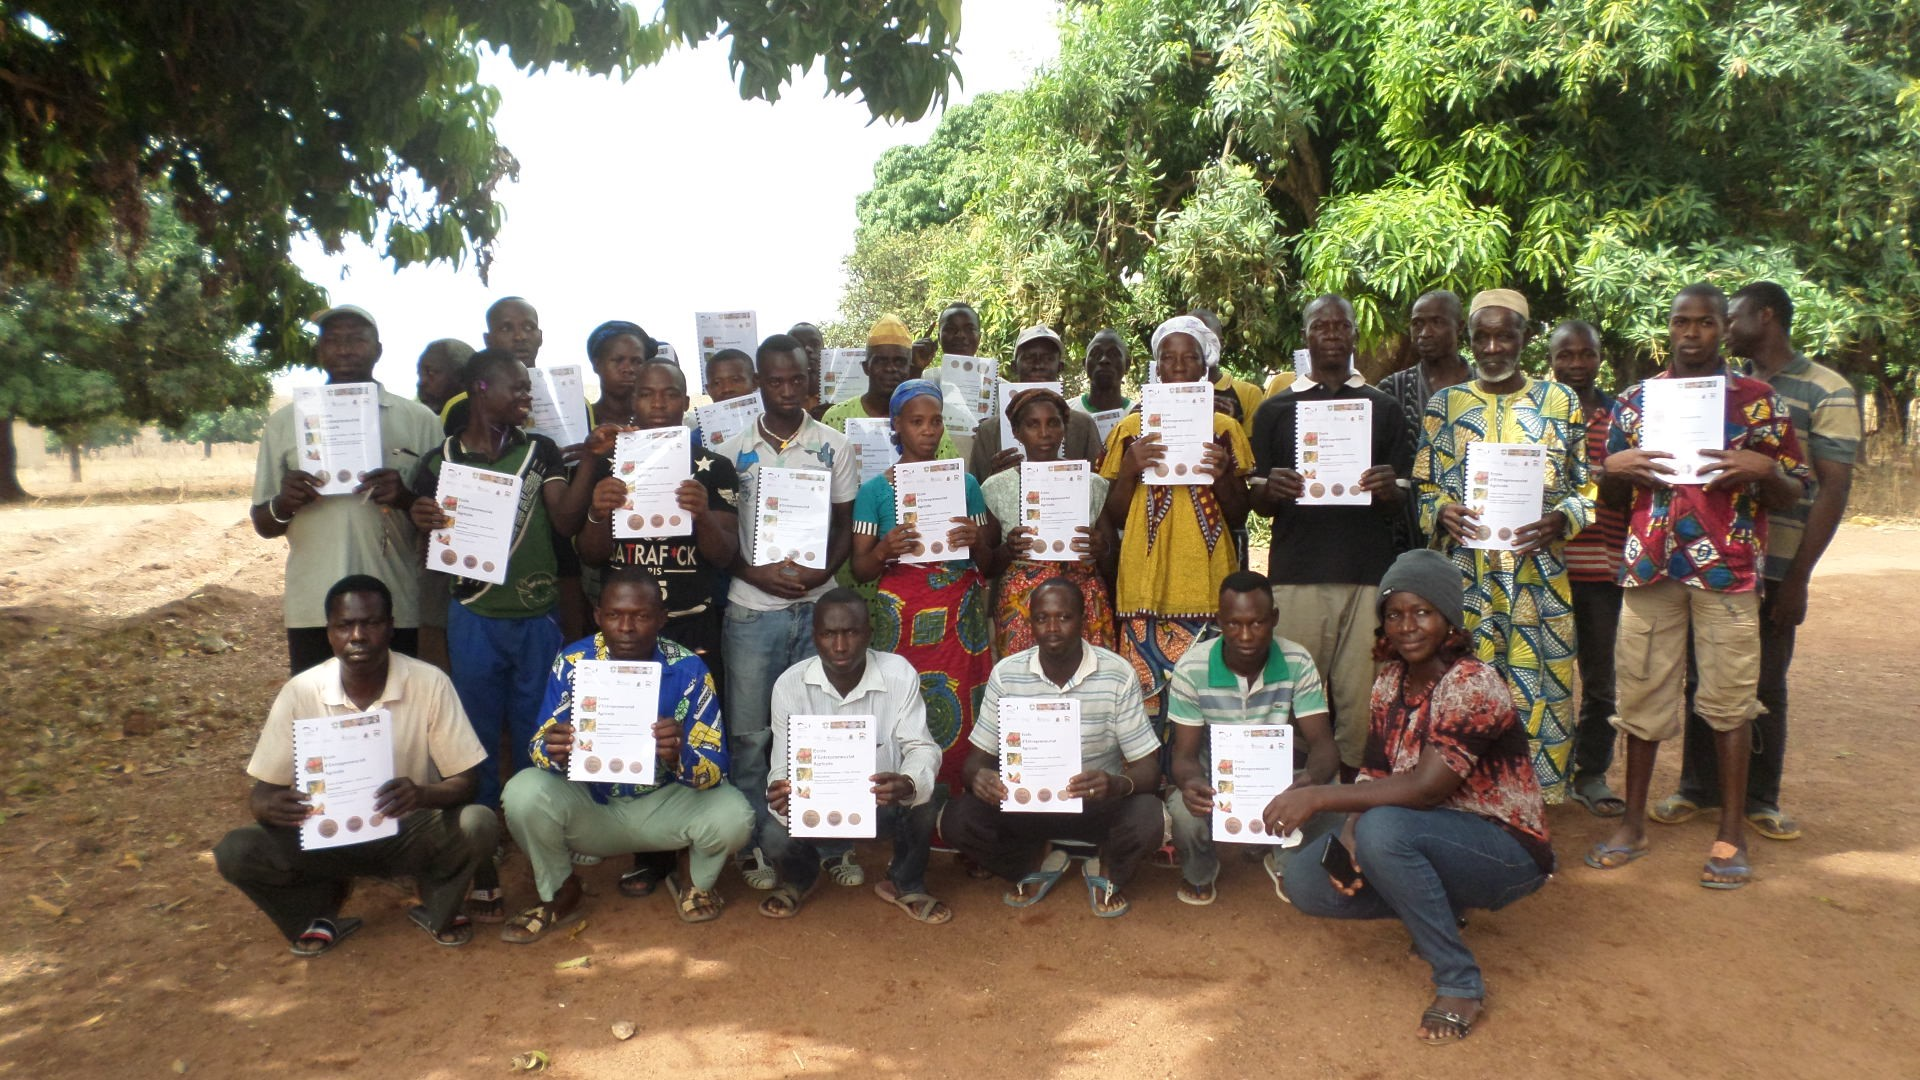 A group of cashew farmers trained on FBS in Côte d'Ivoire ©: Mohamed Salifou for GIZ/ComCashew